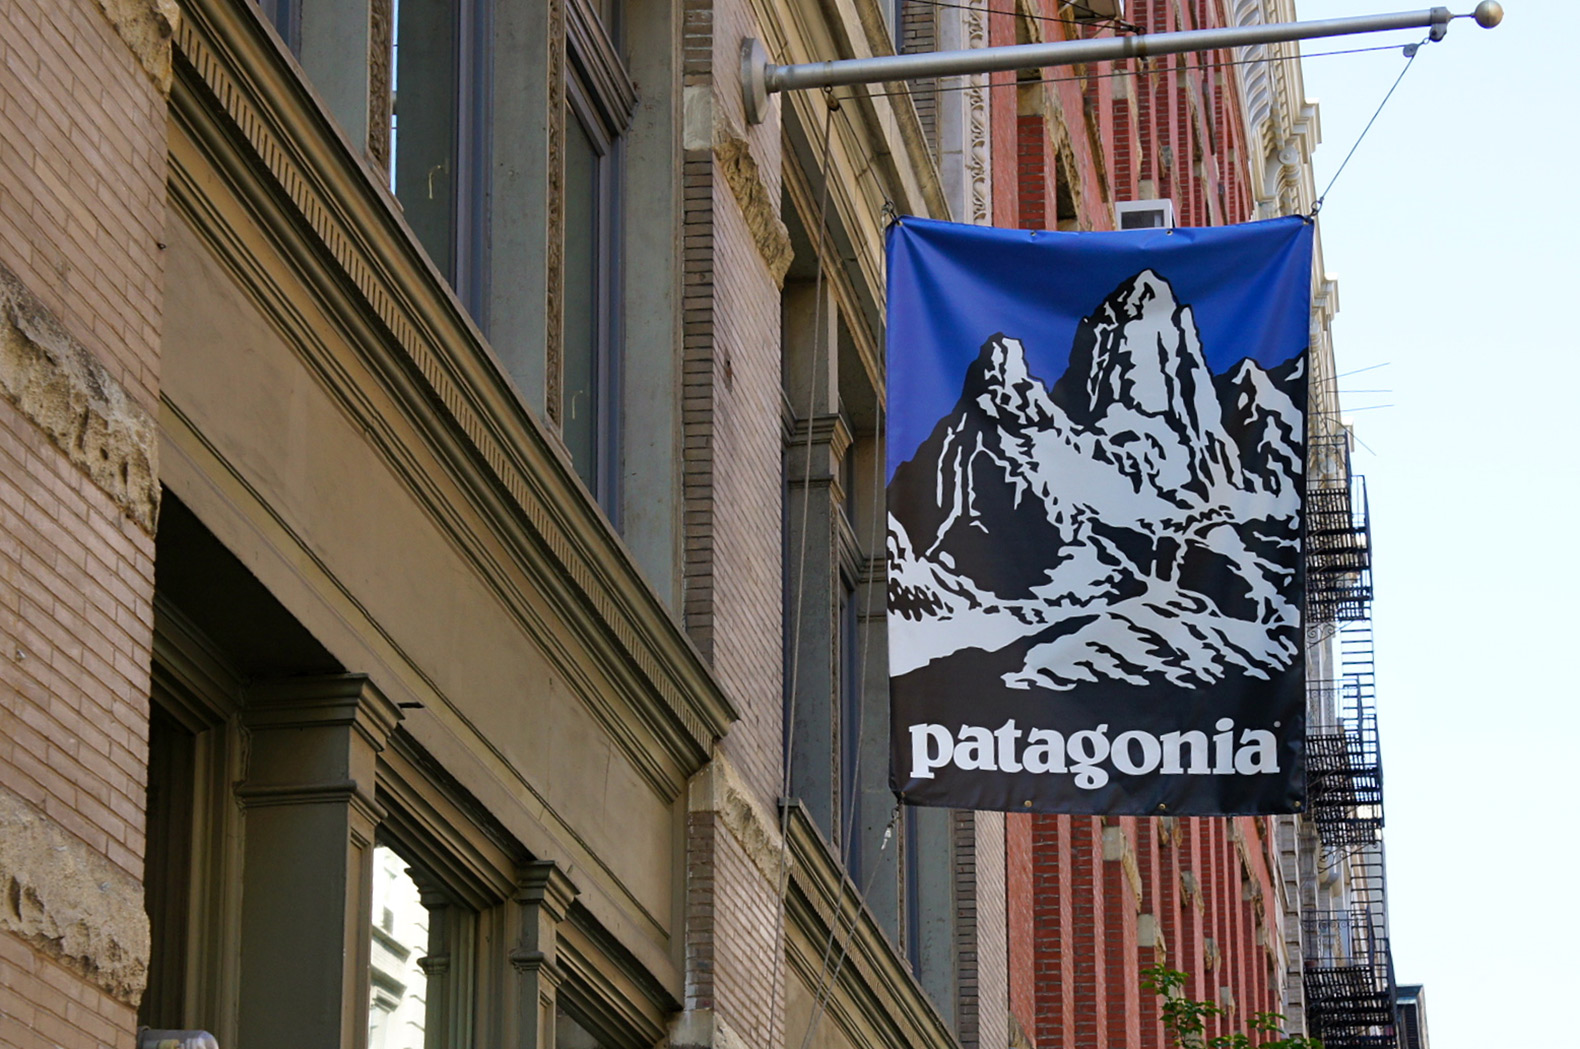 Patagonia donates its $10 million in tax cuts to save the planet